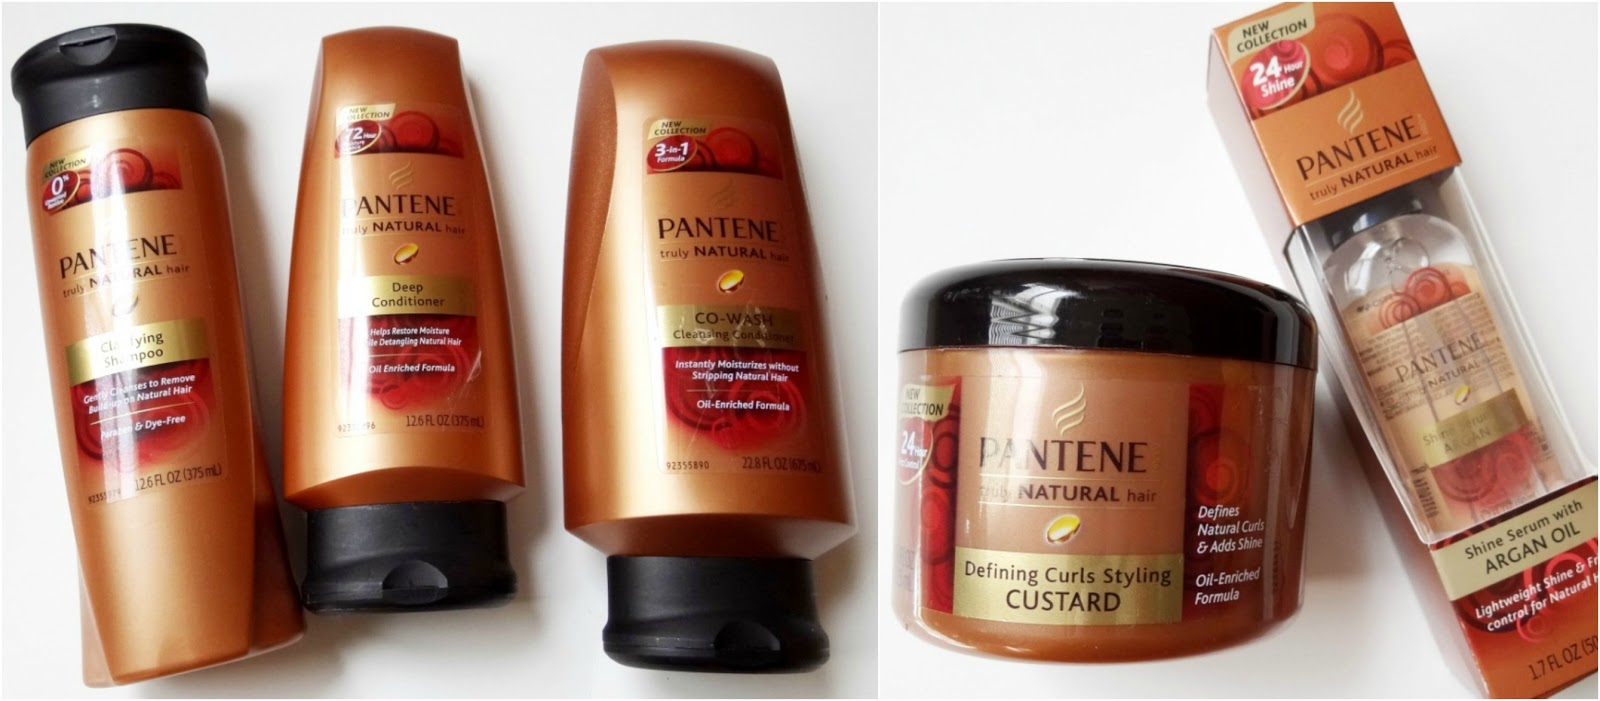 Natural Hair Care Products For African American Hair